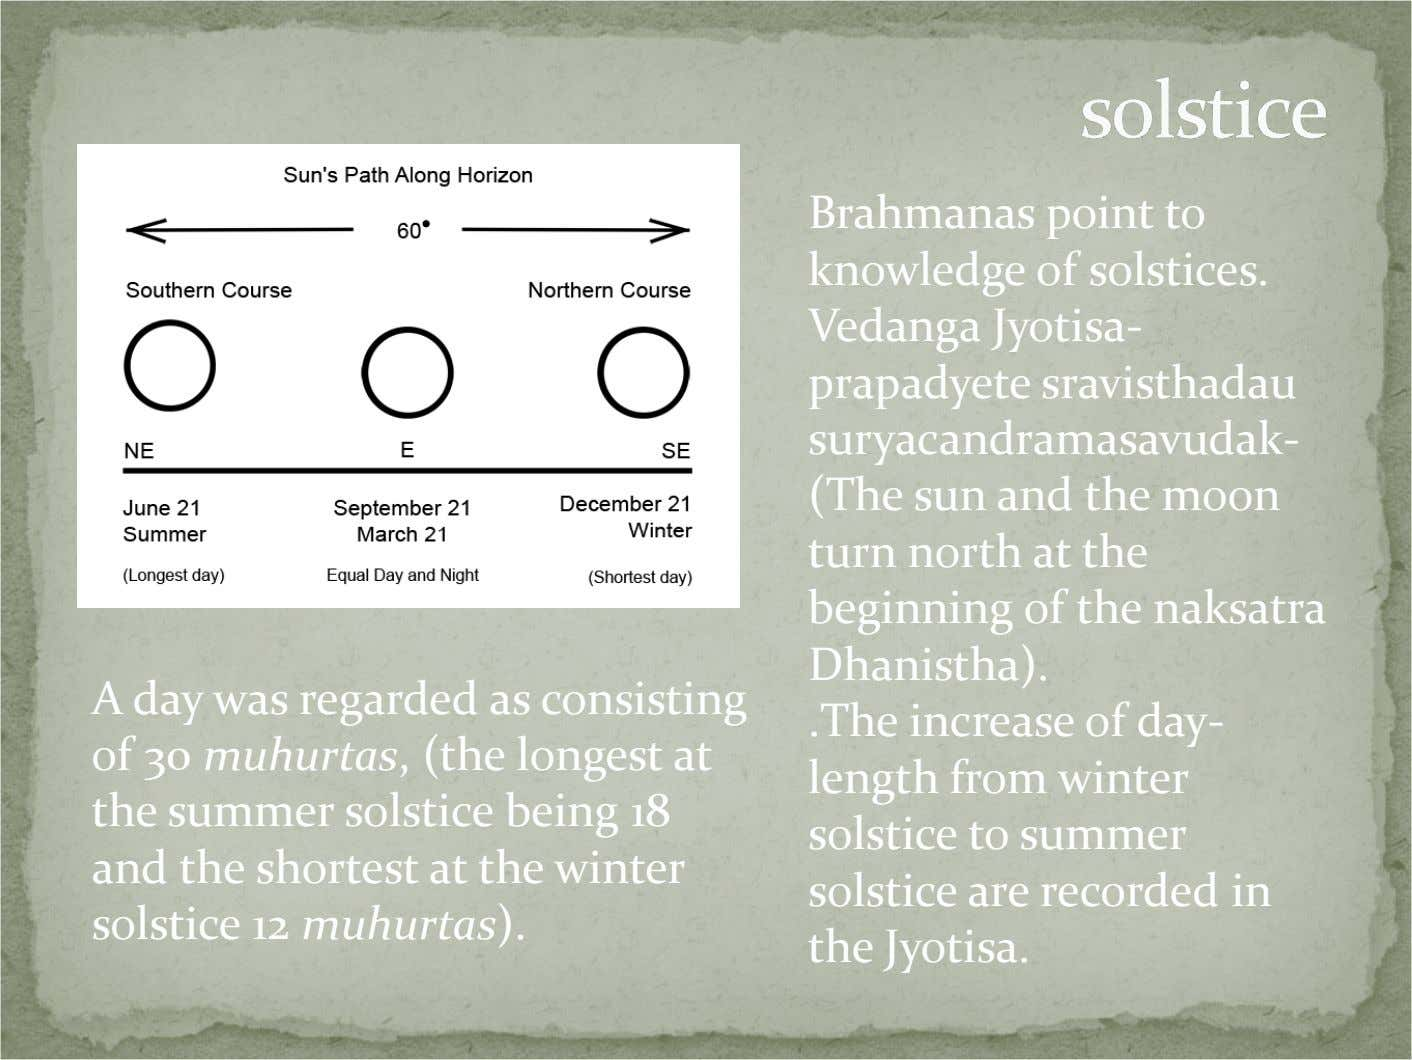 Brahmanas point to knowledge of solstices. Vedanga Jyotisa- prapadyete sravisthadau suryacandramasavudak- A day was